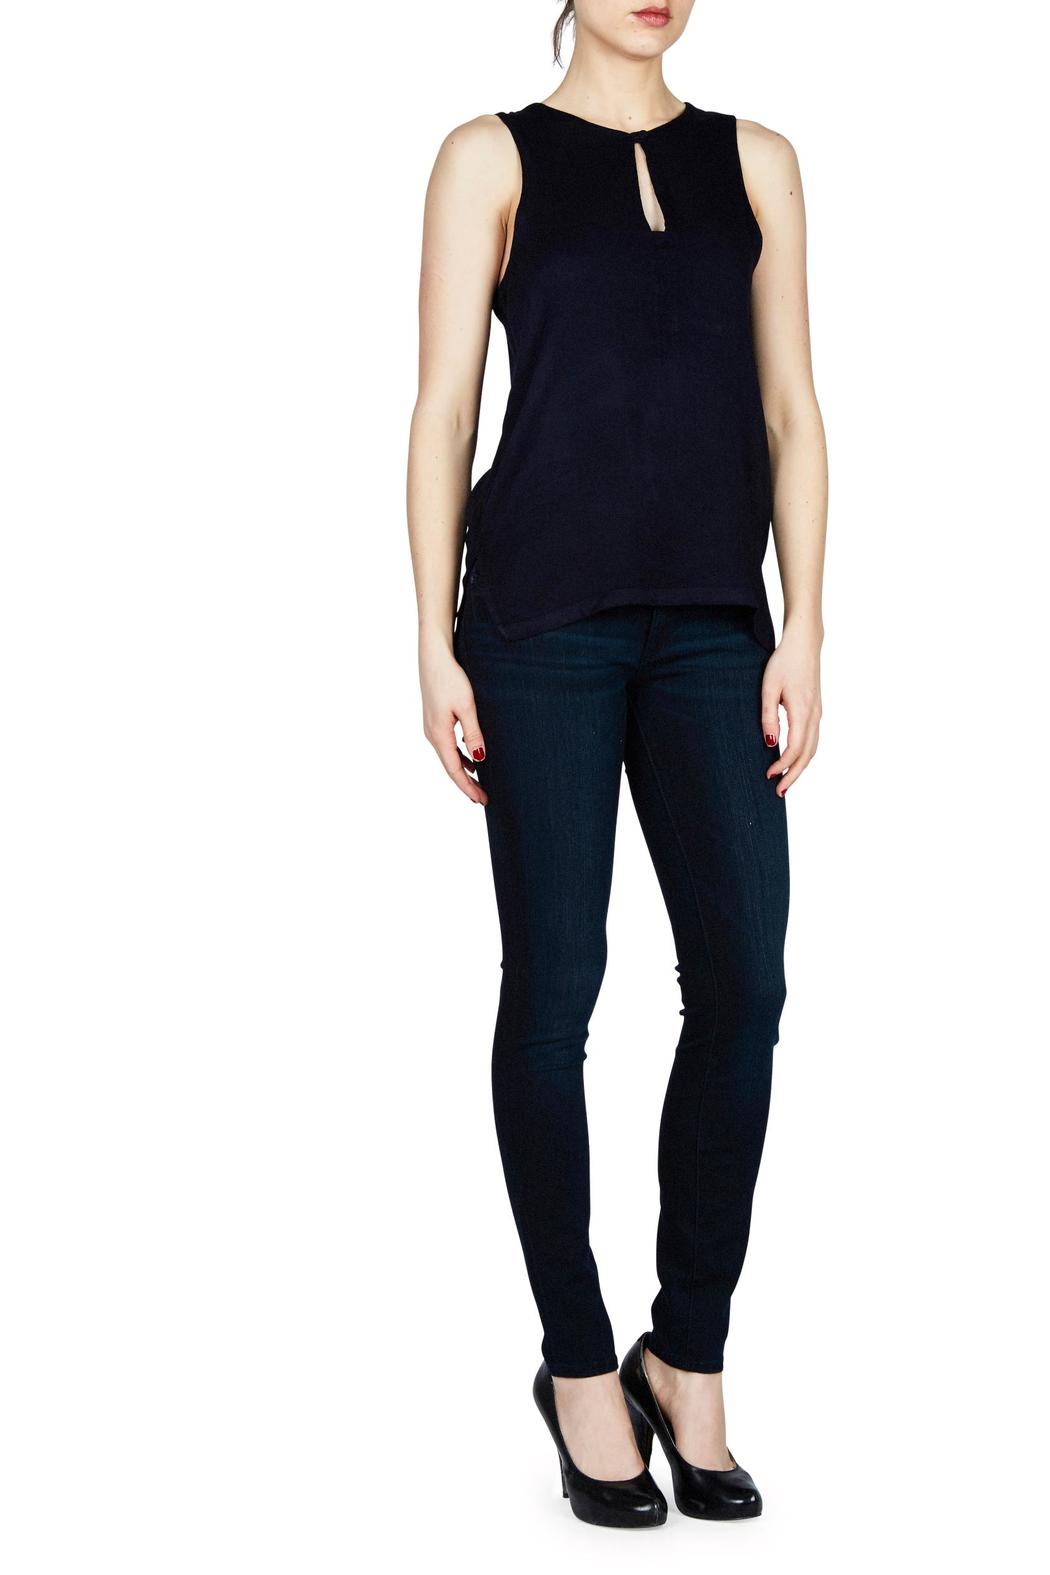 Feel the Piece by Terre Jacobs Peek-A-Boo Top - Front Cropped Image